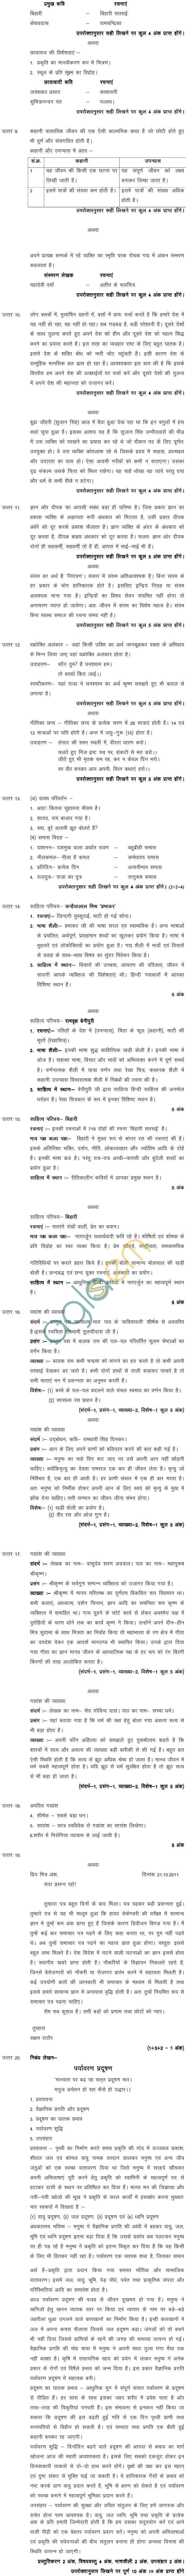 MP Board Class X Hindi Special Model Questions & Answers - Set 1